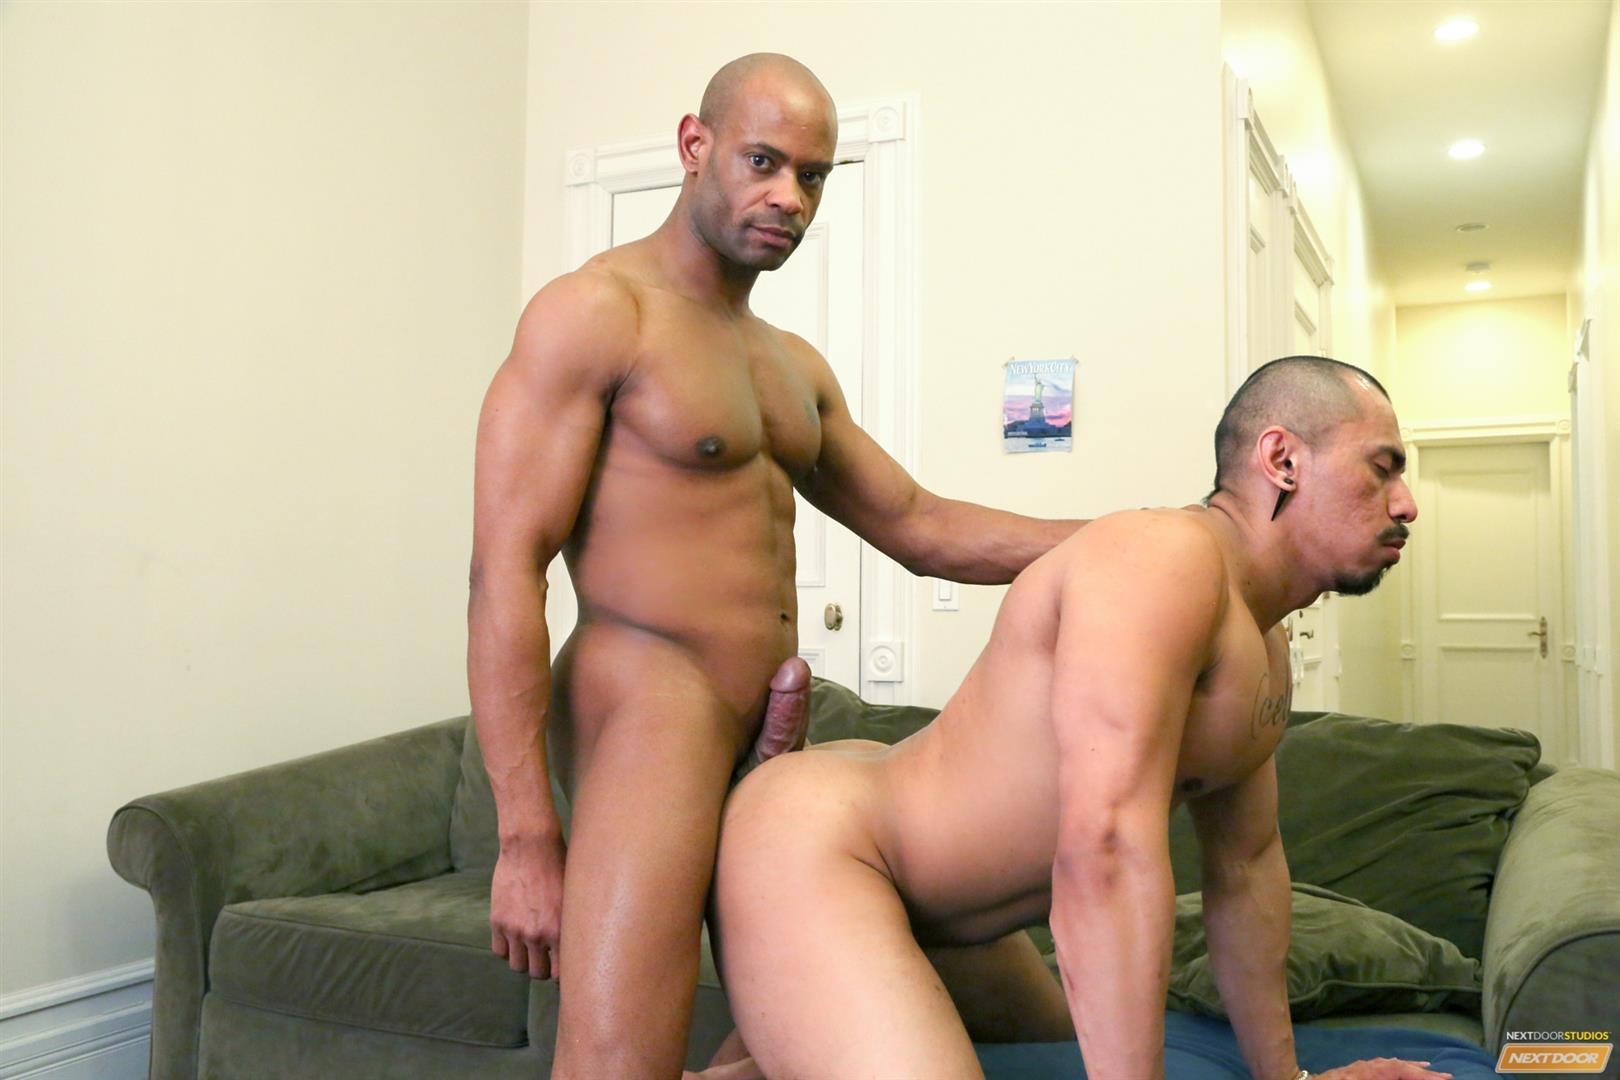 Next-Door-Ebony-Marlone-Starr-and-Romero-Santos-Big-Black-Dick-Fucking-Latino-Amateur-Gay-Porn-13 Marlone Starr Fucks Boyfriend Romero Santos With His Big Black Dick